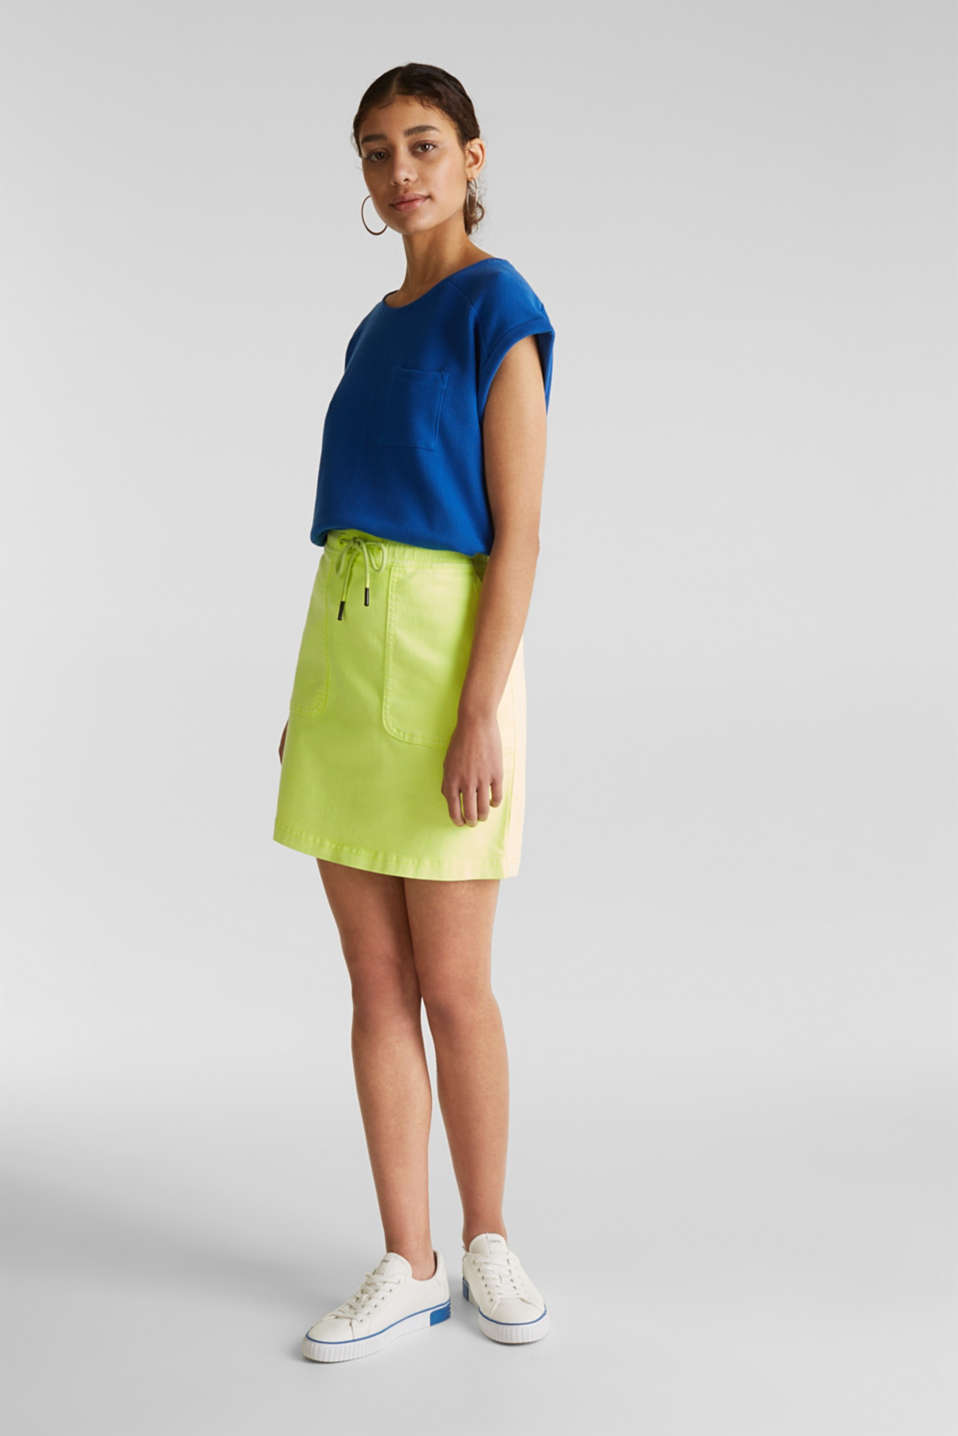 Textured stretch top with a pocket, BRIGHT BLUE, detail image number 1